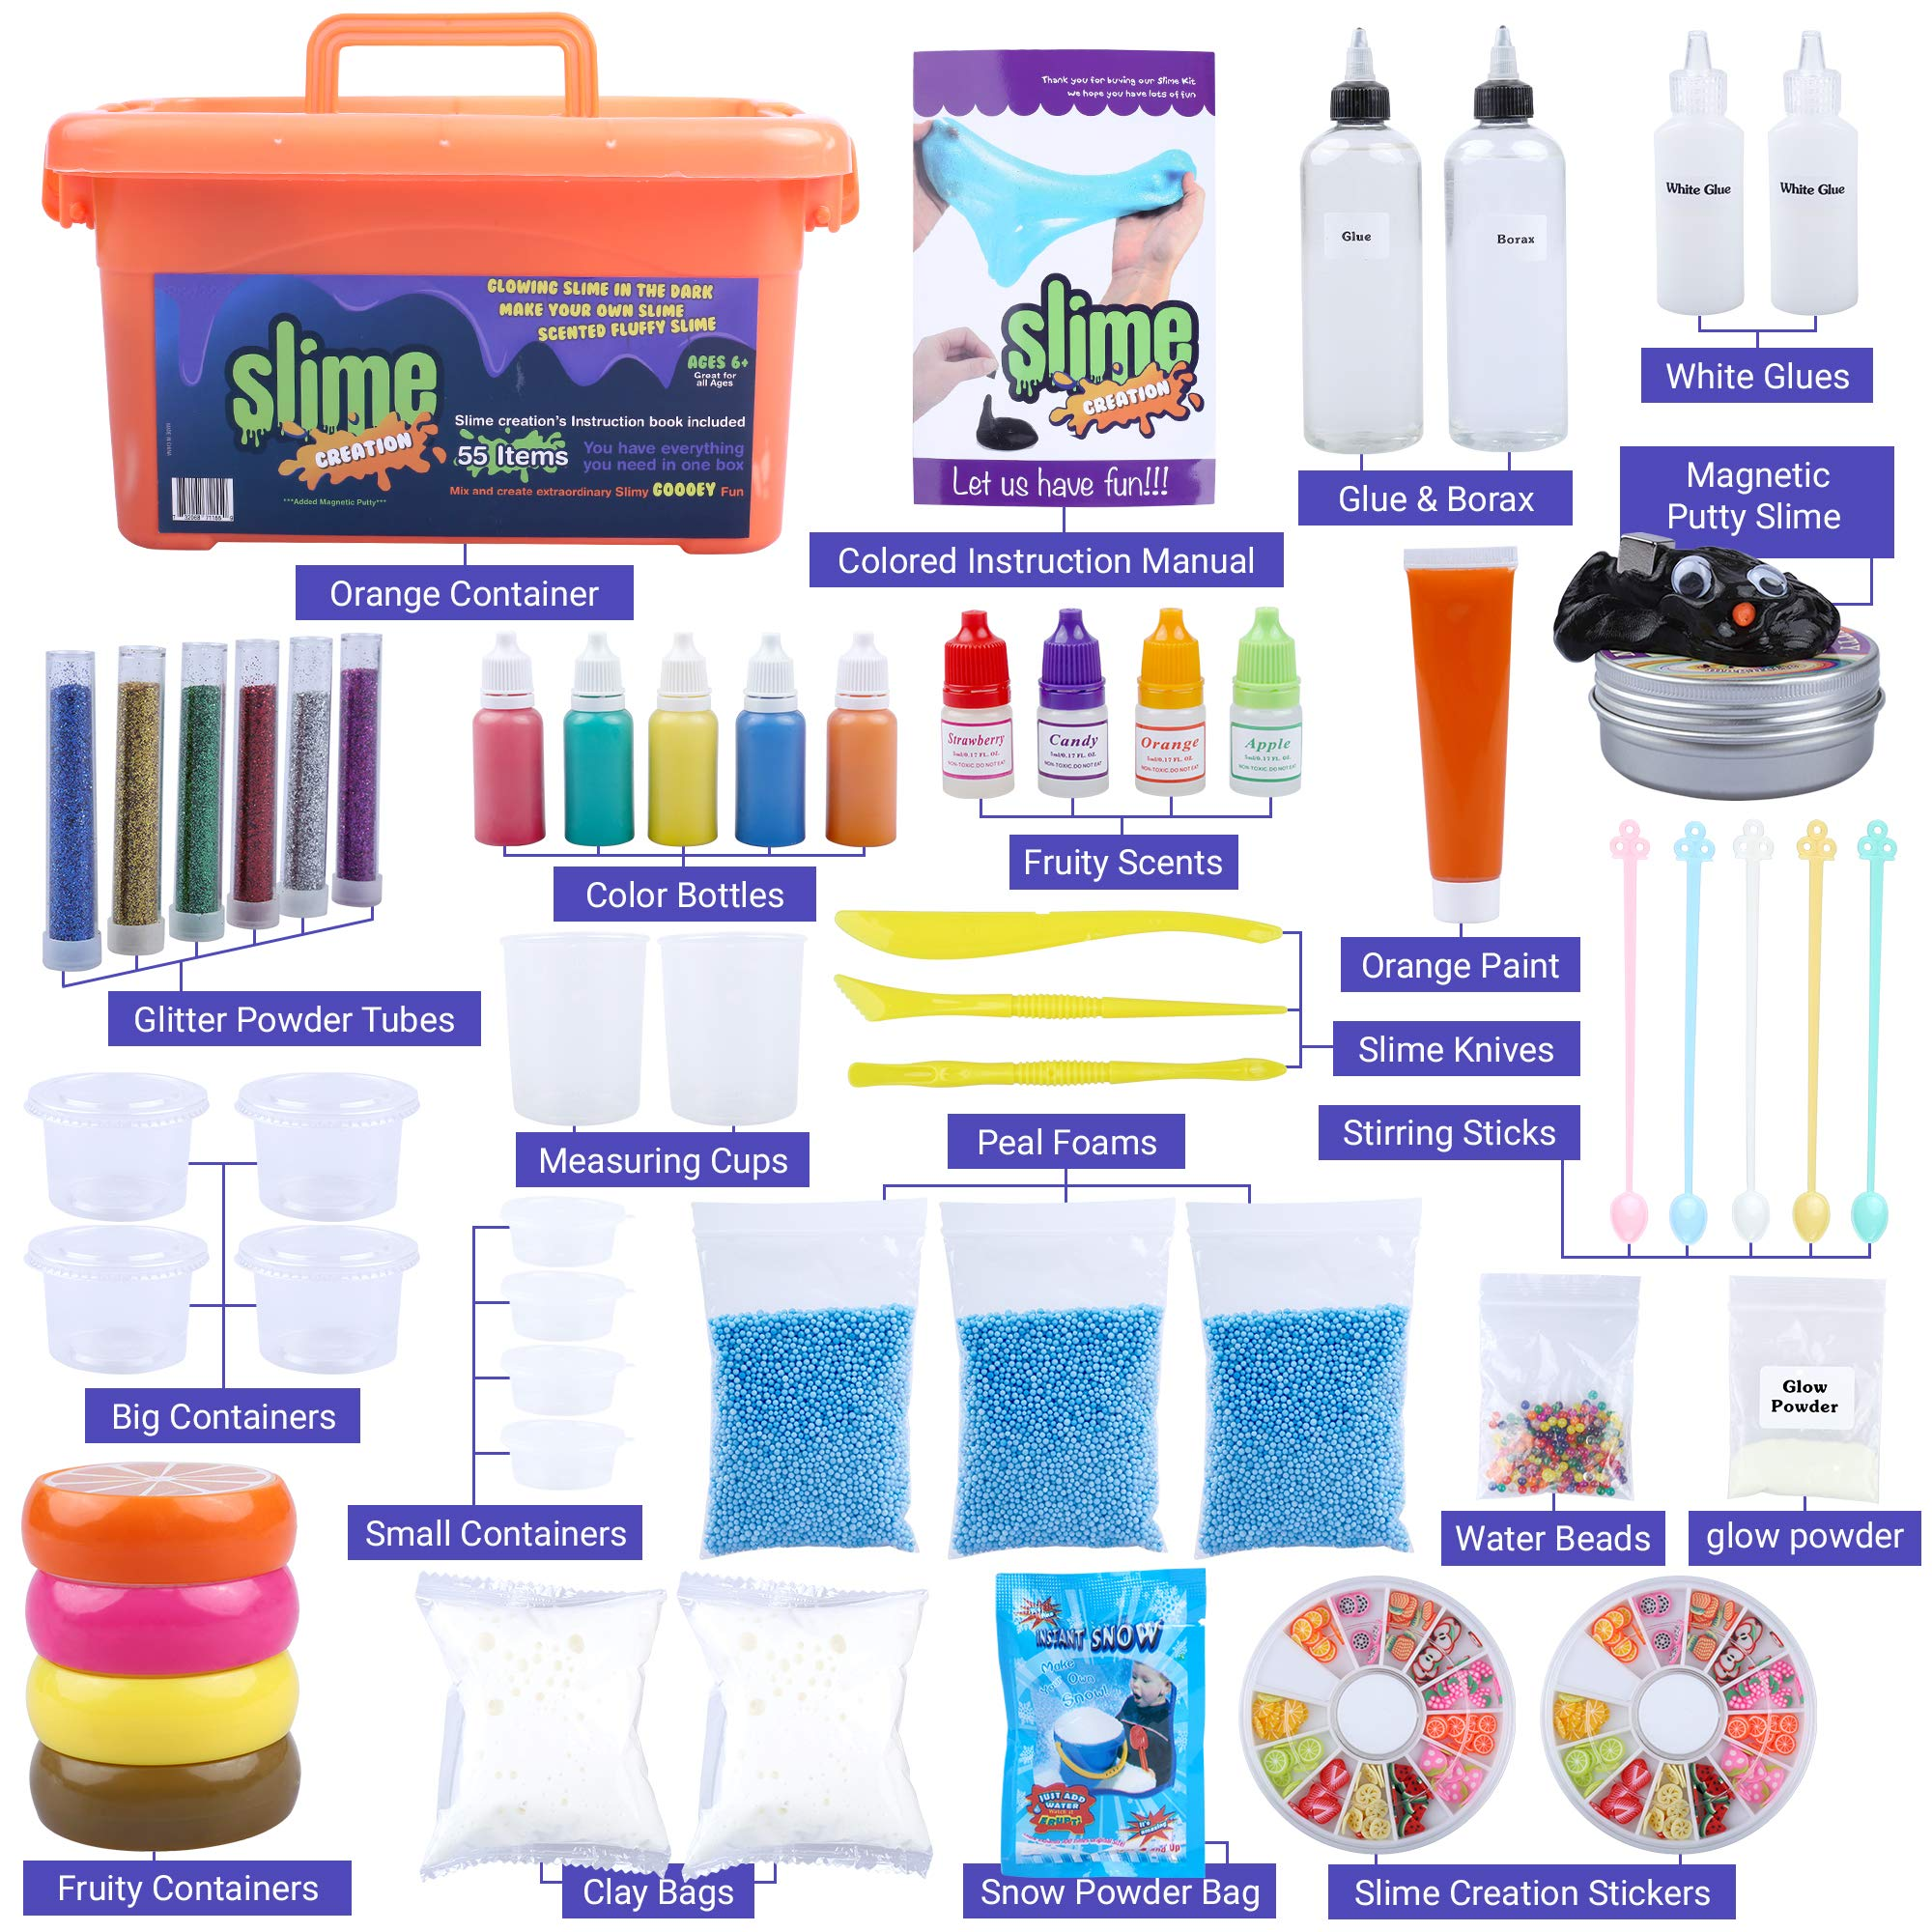 Slime Kit Supplies for Girls & Boys: 55 Piece DIY Kits for Kids with Activator Ingredients, Glue, Foam Beads, Glitter - Set with Everything for Making Fluffy, Clear, Rainbow, Magnetic & Scented Slimes by Slime Creation (Image #2)